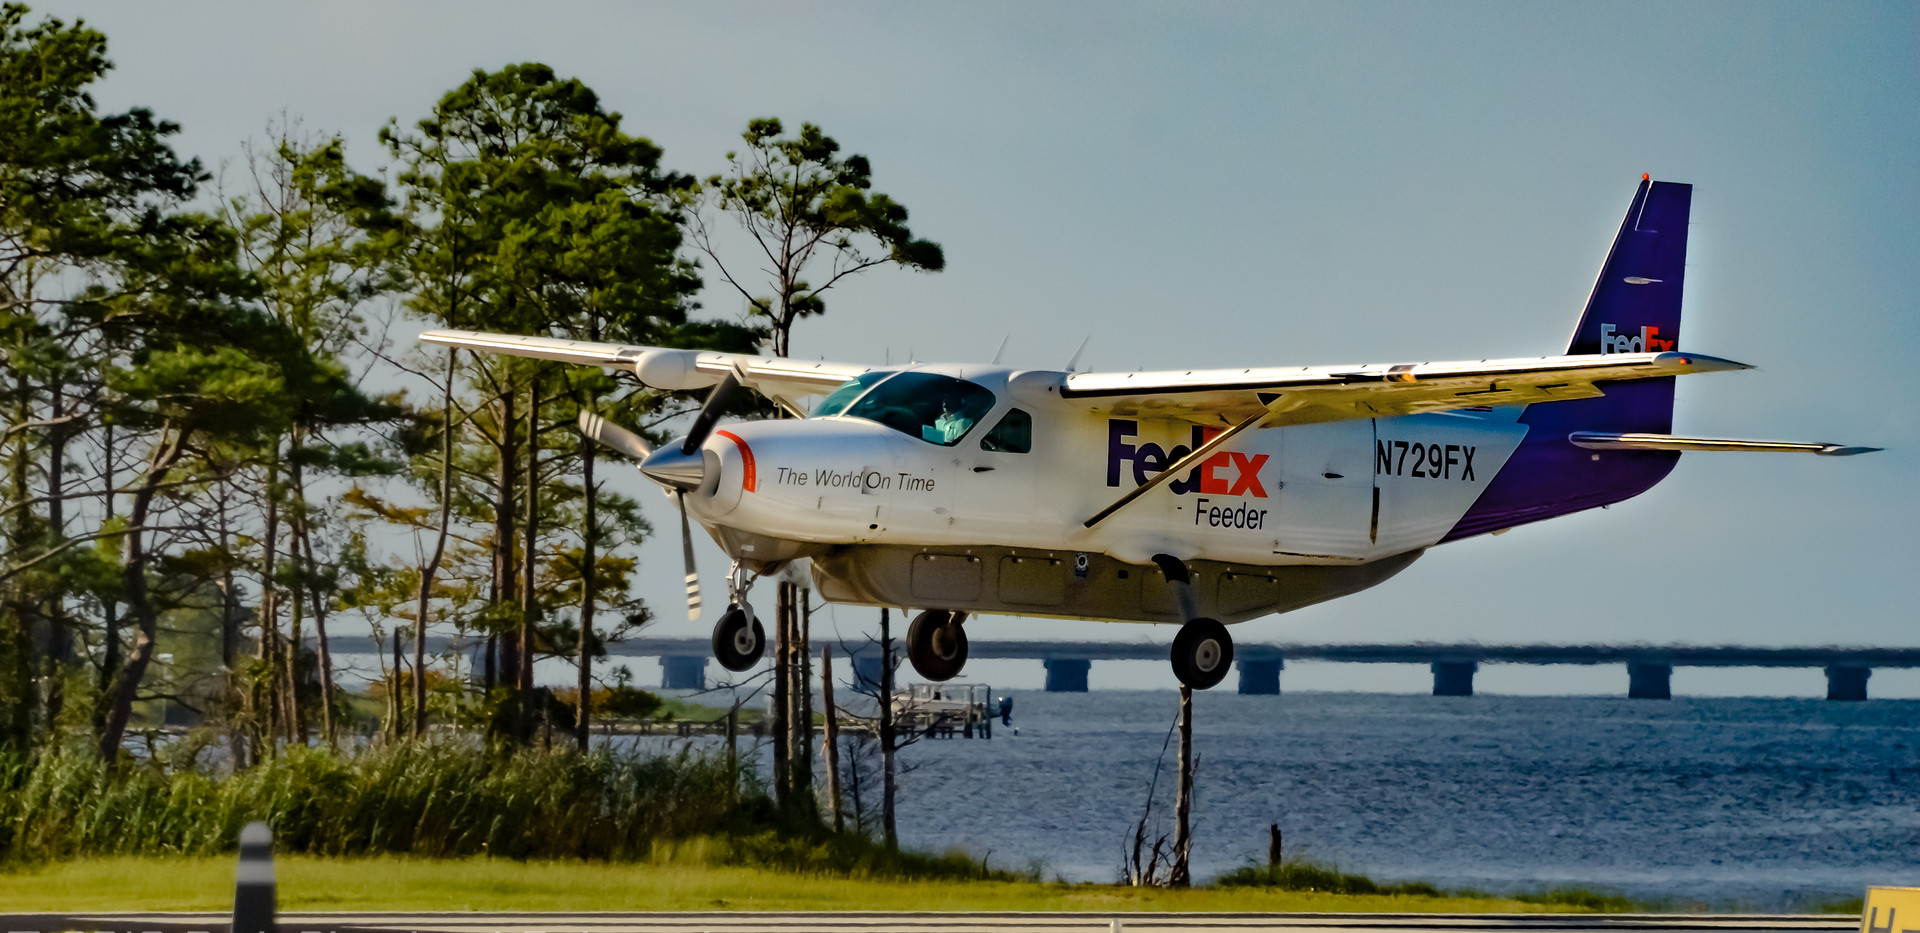 FedEx Feeder Cessna 208 lands at KMQI